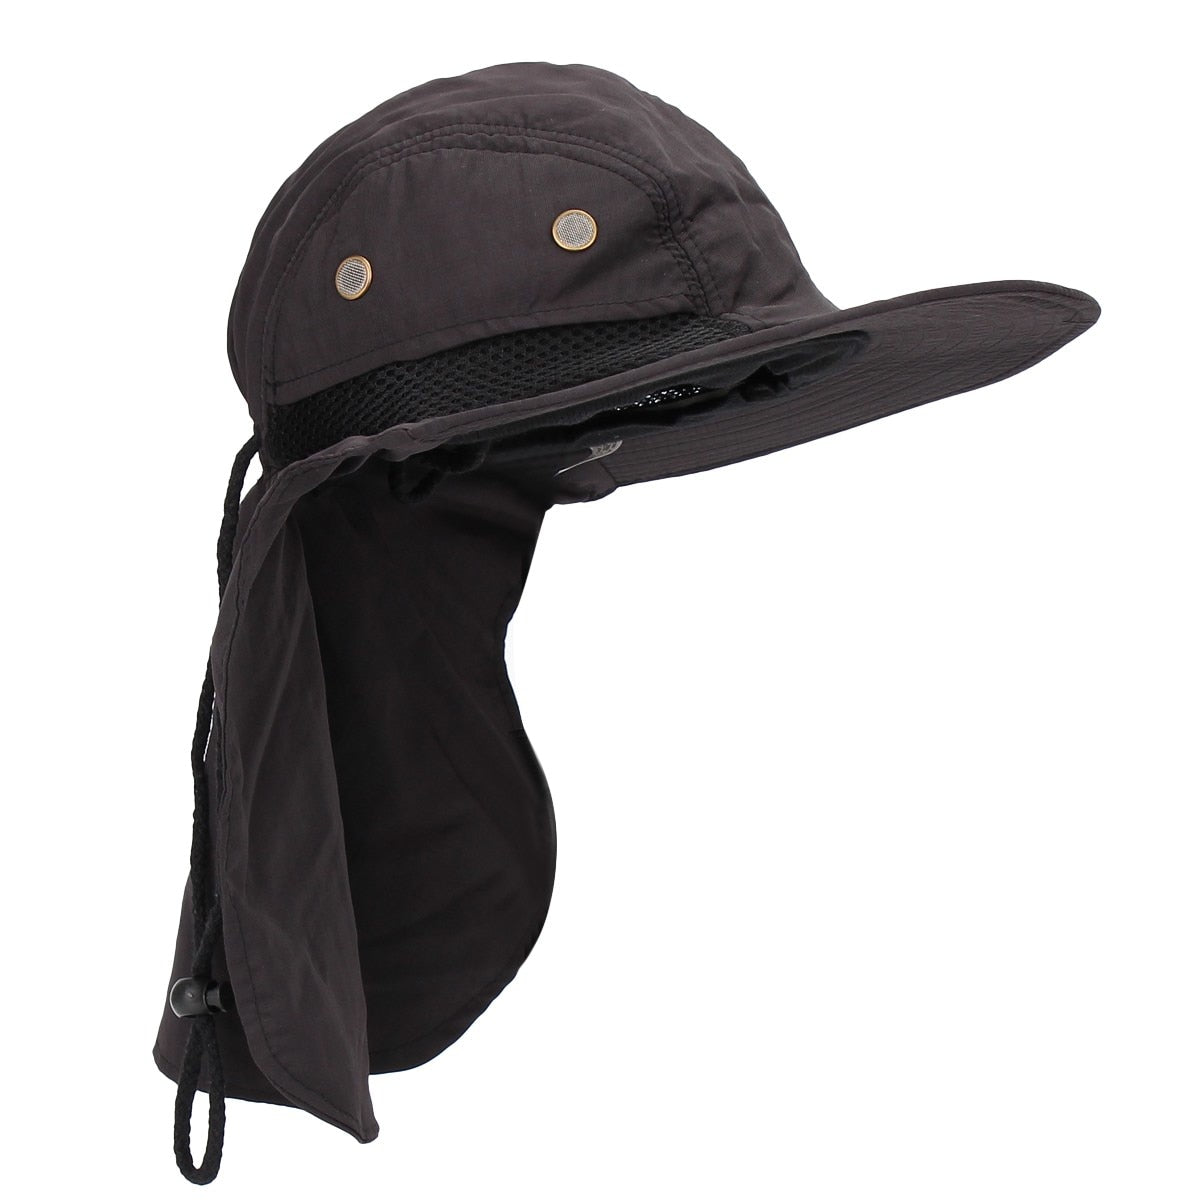 0d65dc132fa2e Uinsex UV Protection Face Neck Cover Bucket Hat Women Men Fishing ...